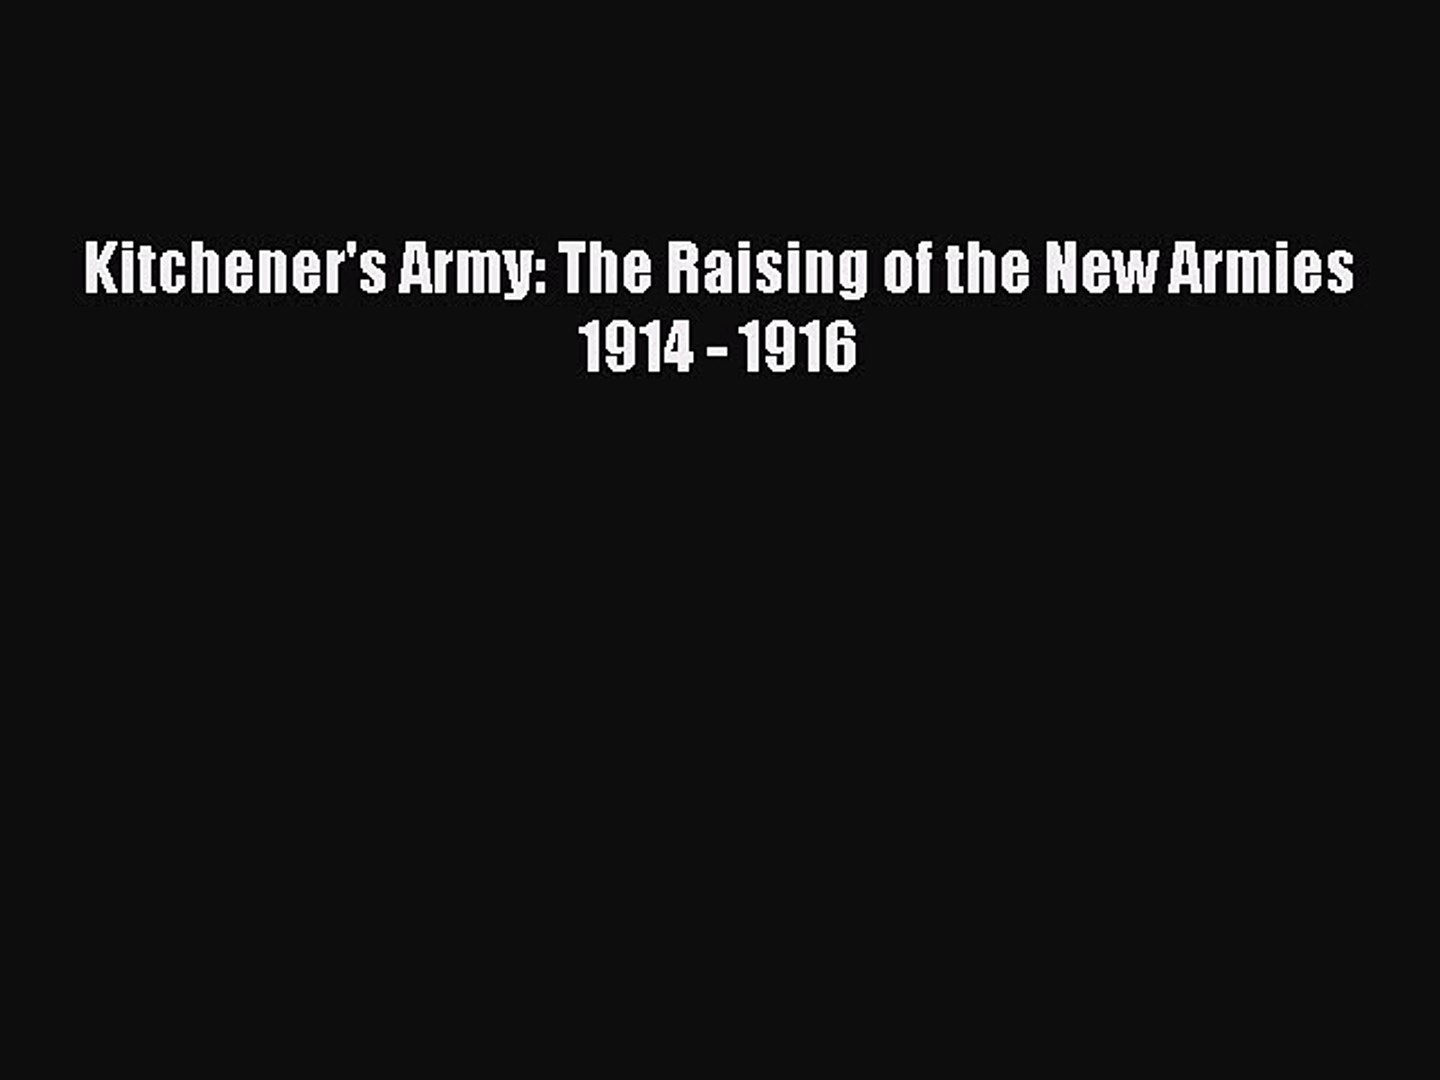 Download Kitchener's Army: The Raising of the New Armies 1914 - 1916 Ebook Free